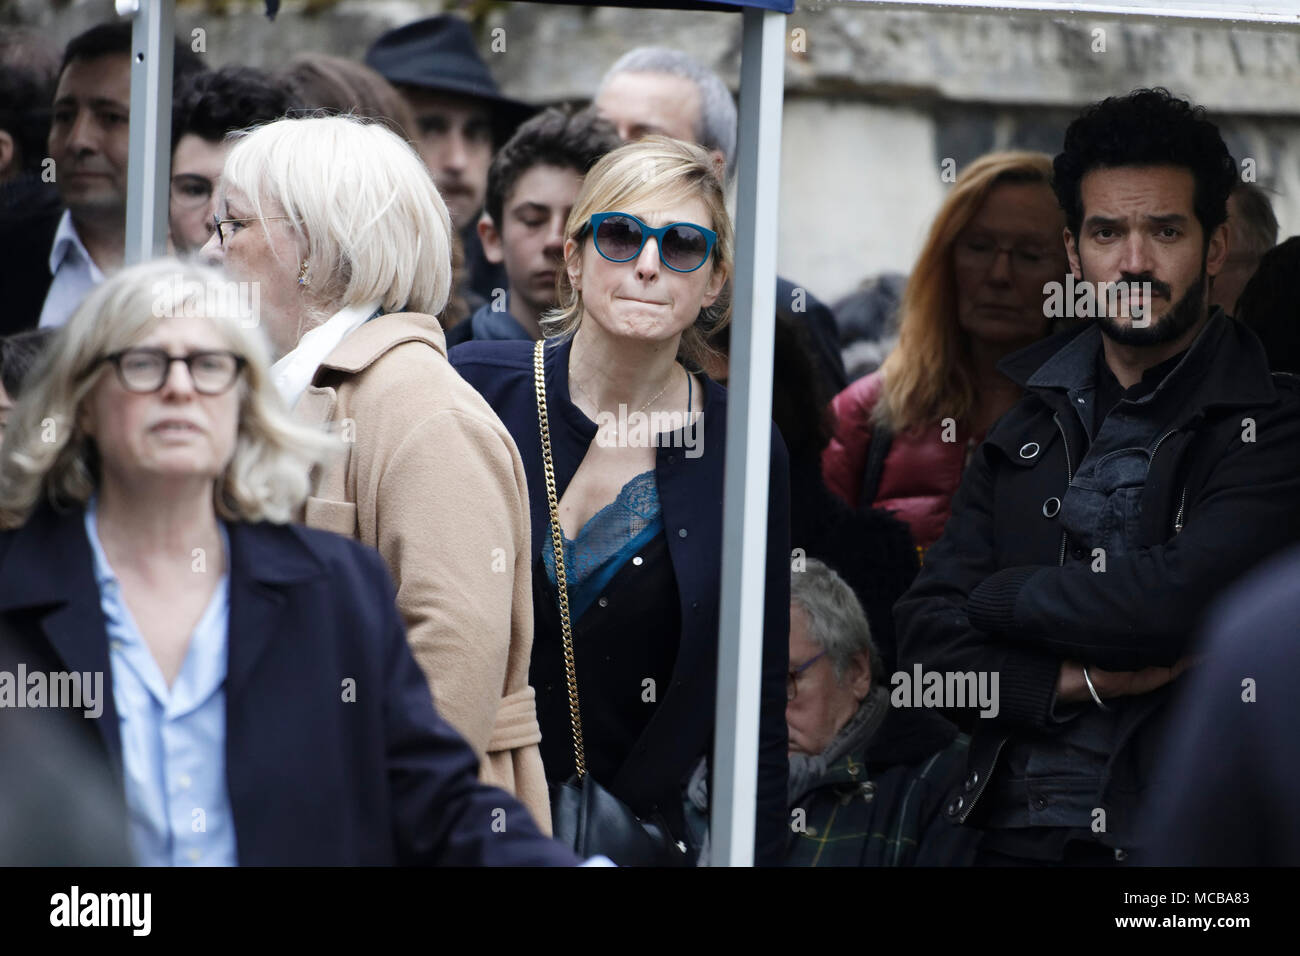 Paris, France. 12th Apr, 2018. Julie Gayet at the Jacques Higelin funeral at Père Lachaise cemetery on April 12, 2018 in Paris, France. - Stock Image